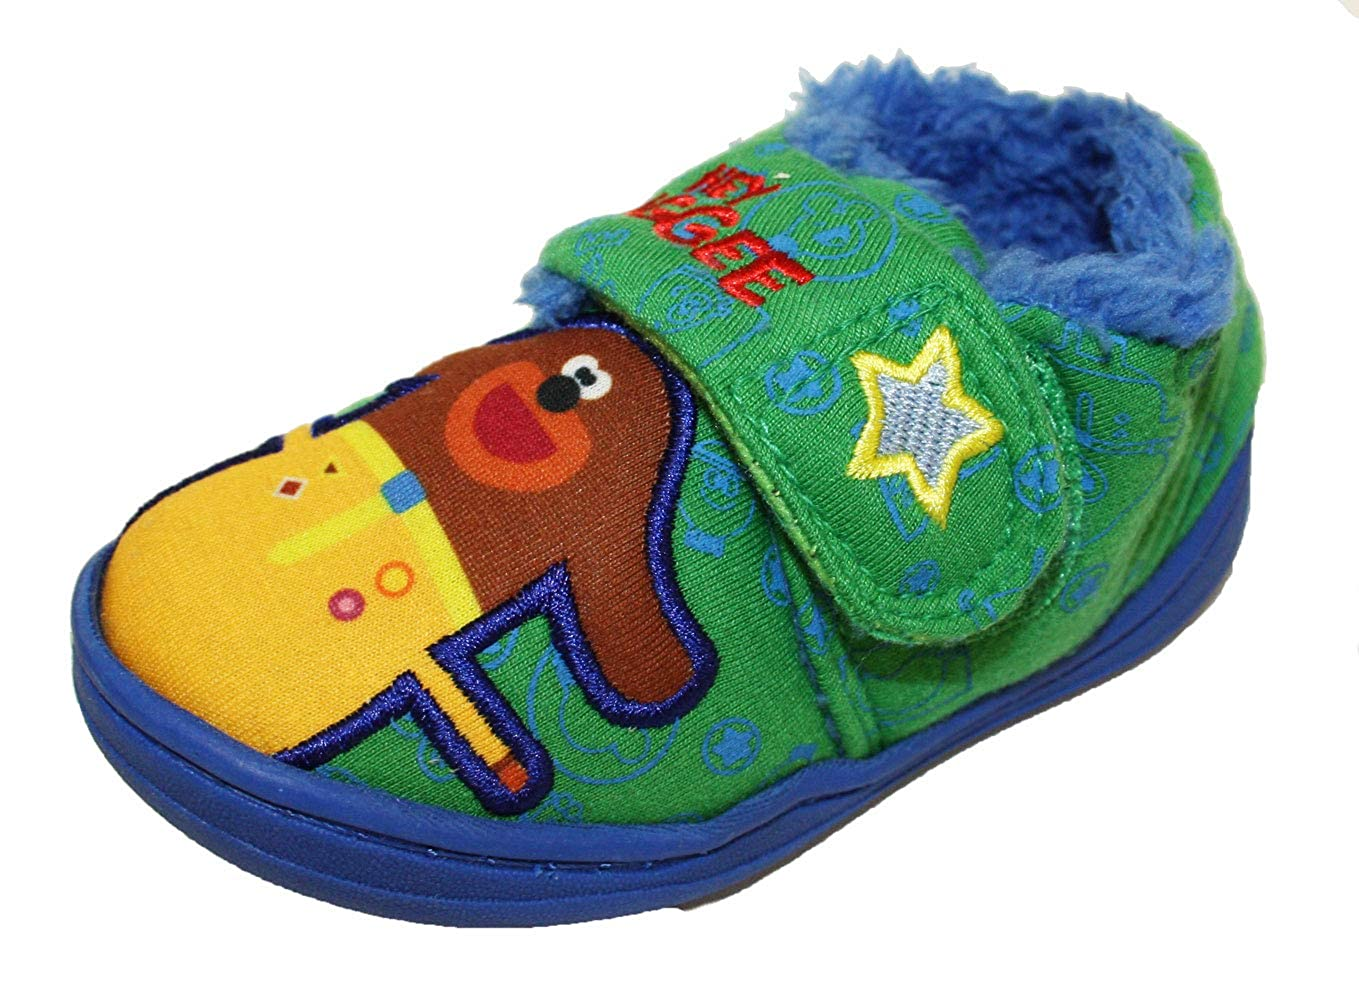 Studio AKA Hey Duggee Boys Hugs Low Top Slippers UK Sizes Child 5-10 WLhugsparent